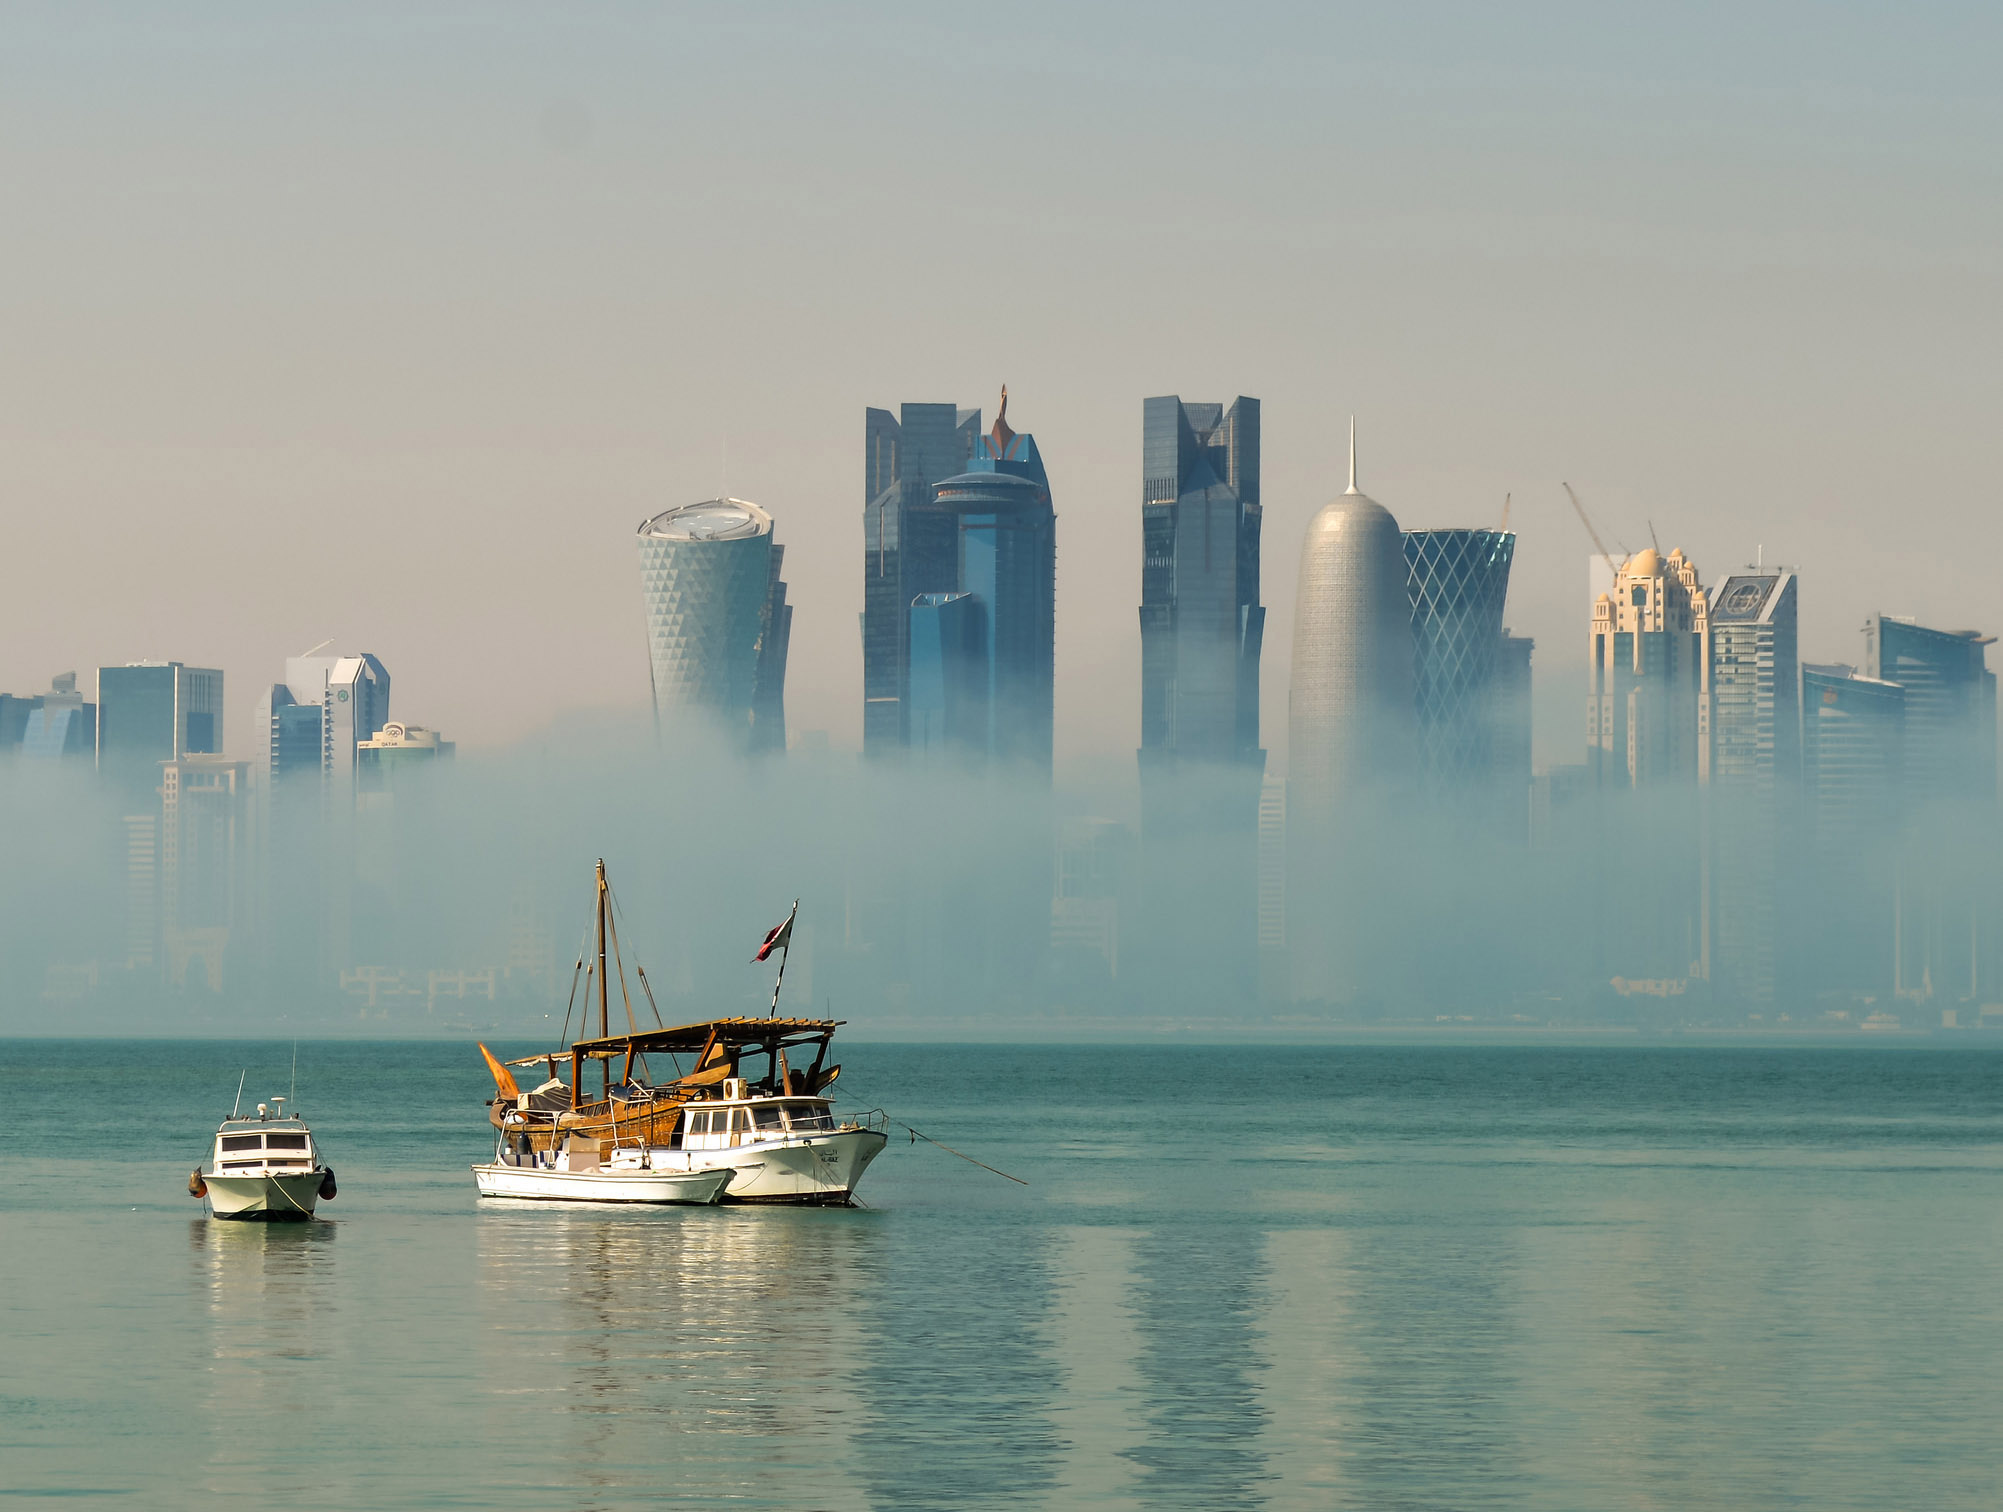 A picture of Doha from the water, with skyscrapers rising above from dawn mists